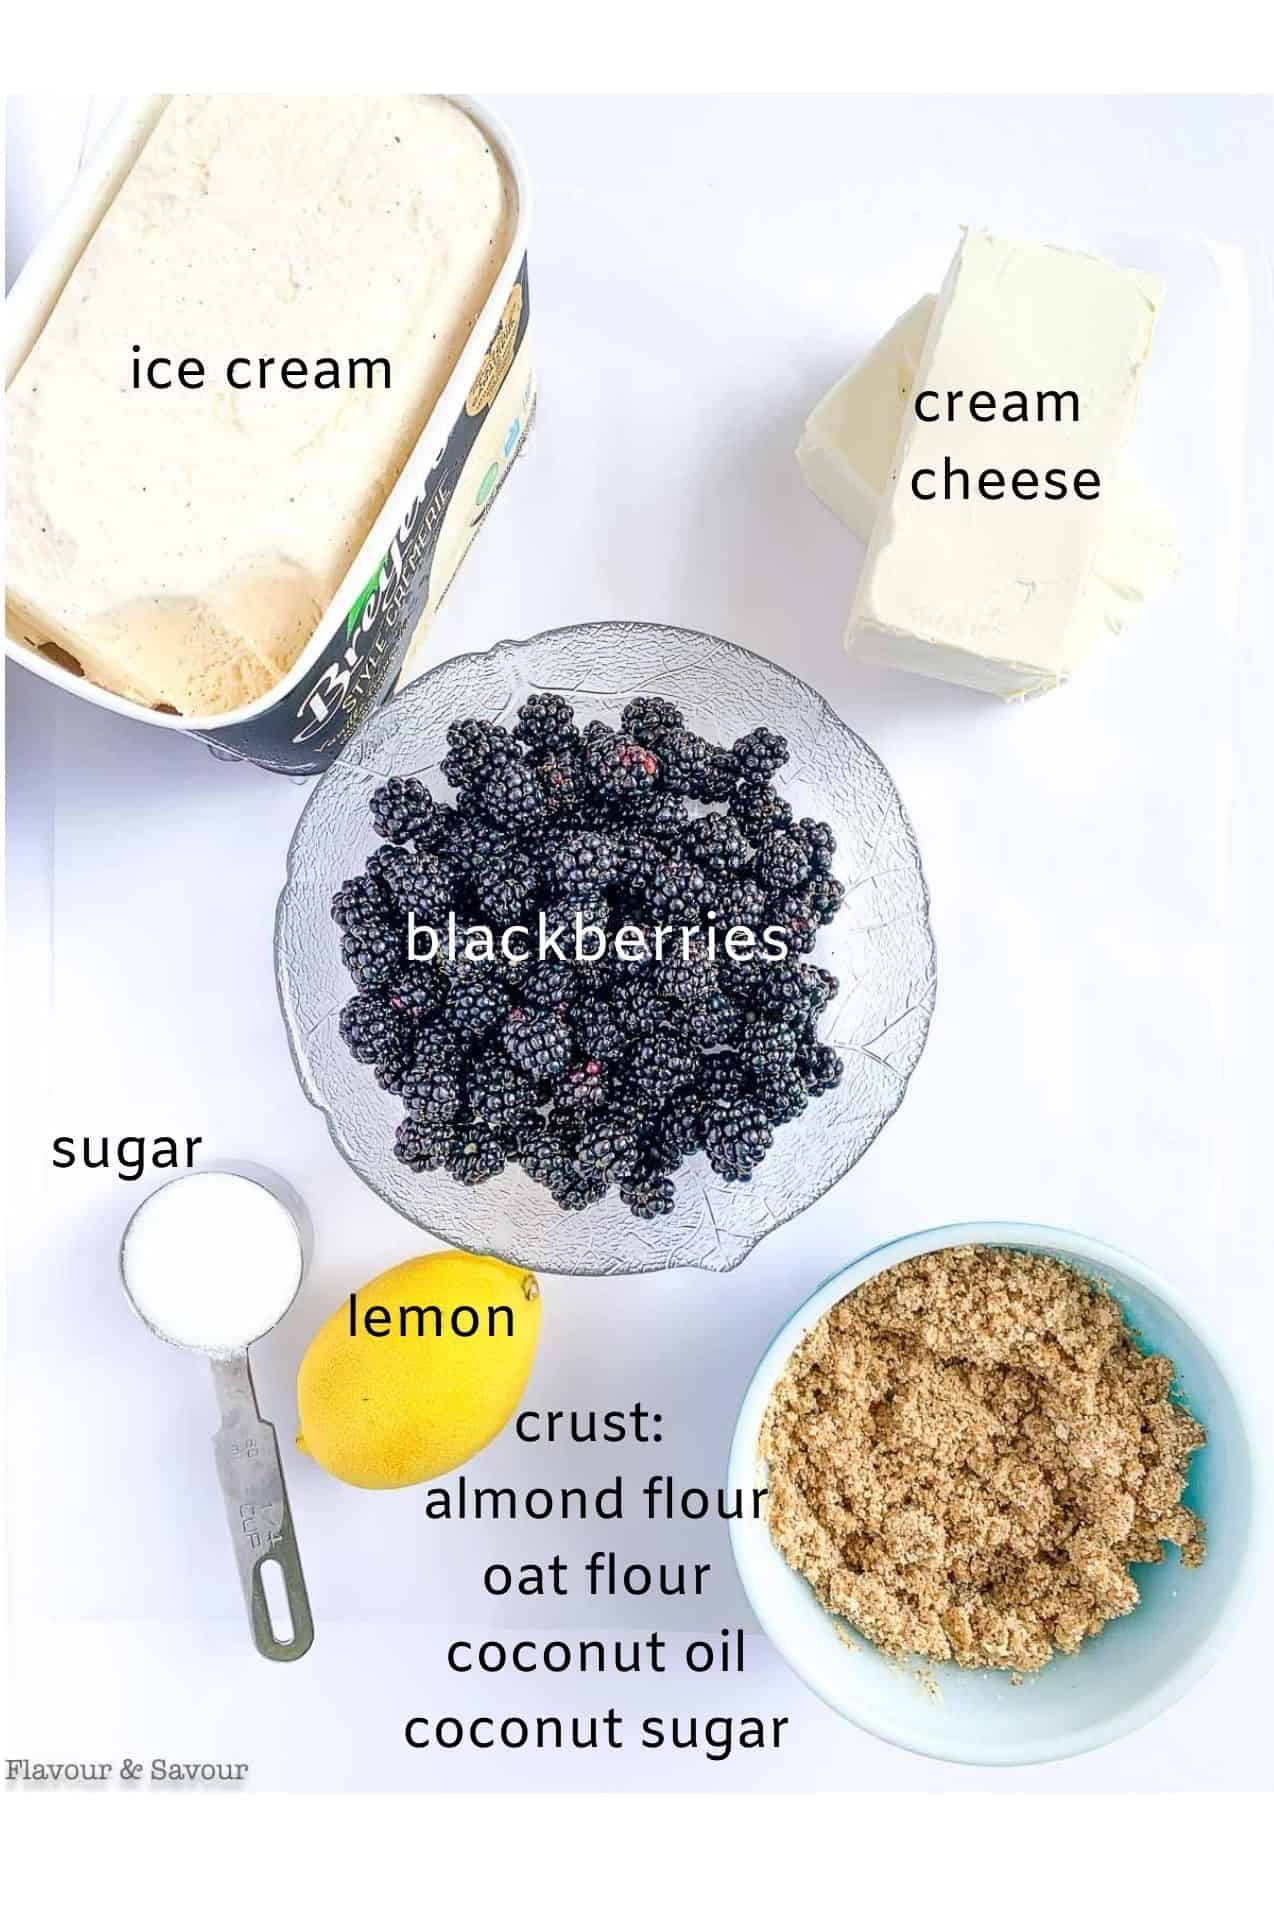 Labeled ingredients for Blackberry Ice Cream Cheesecake